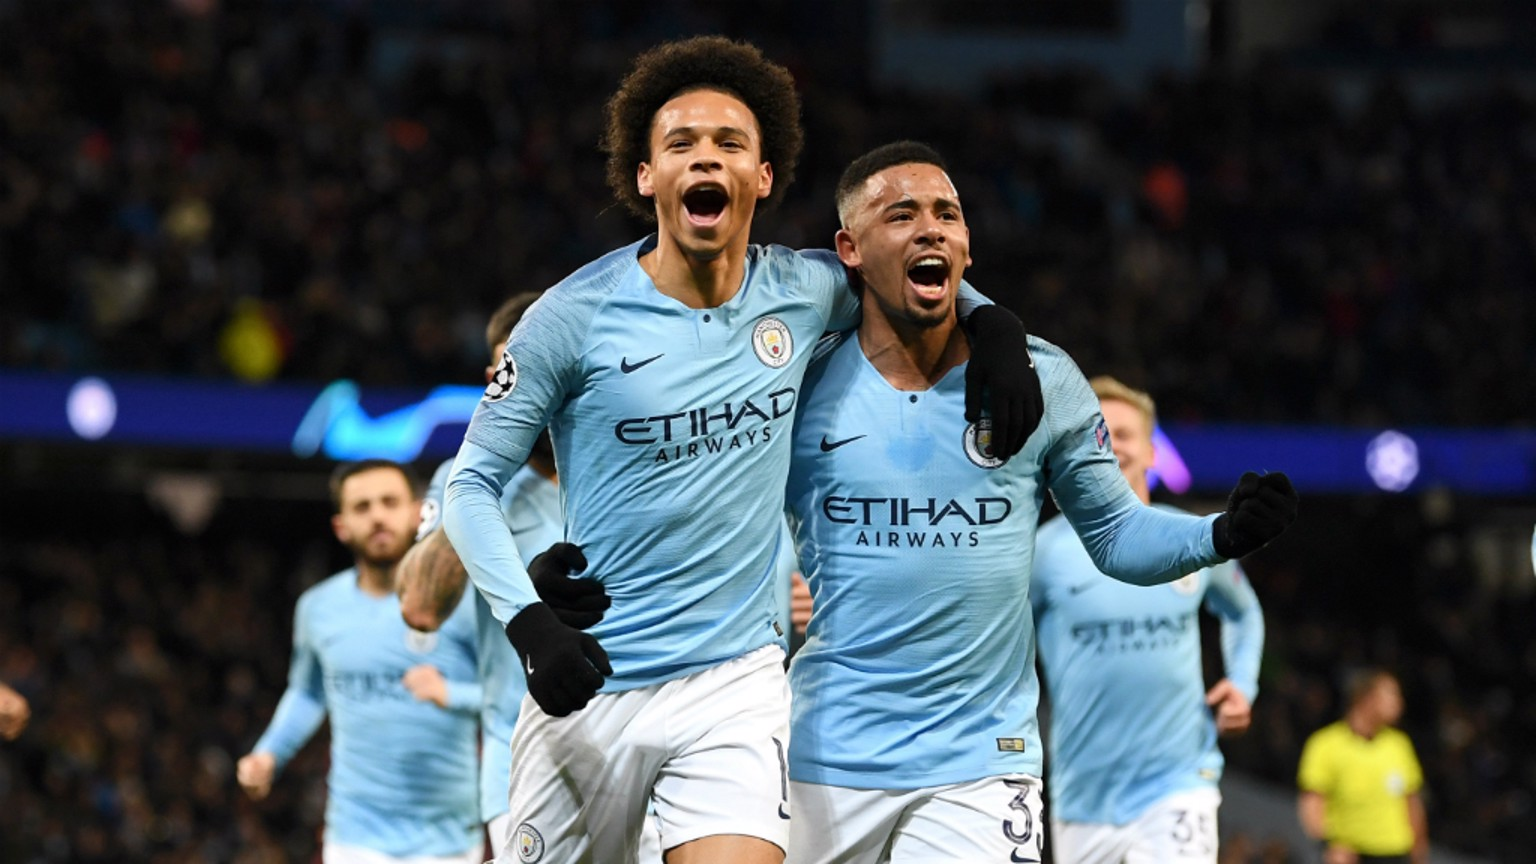 SUPER SANE: Leroy Sane and Gabriel Jesus wheel away